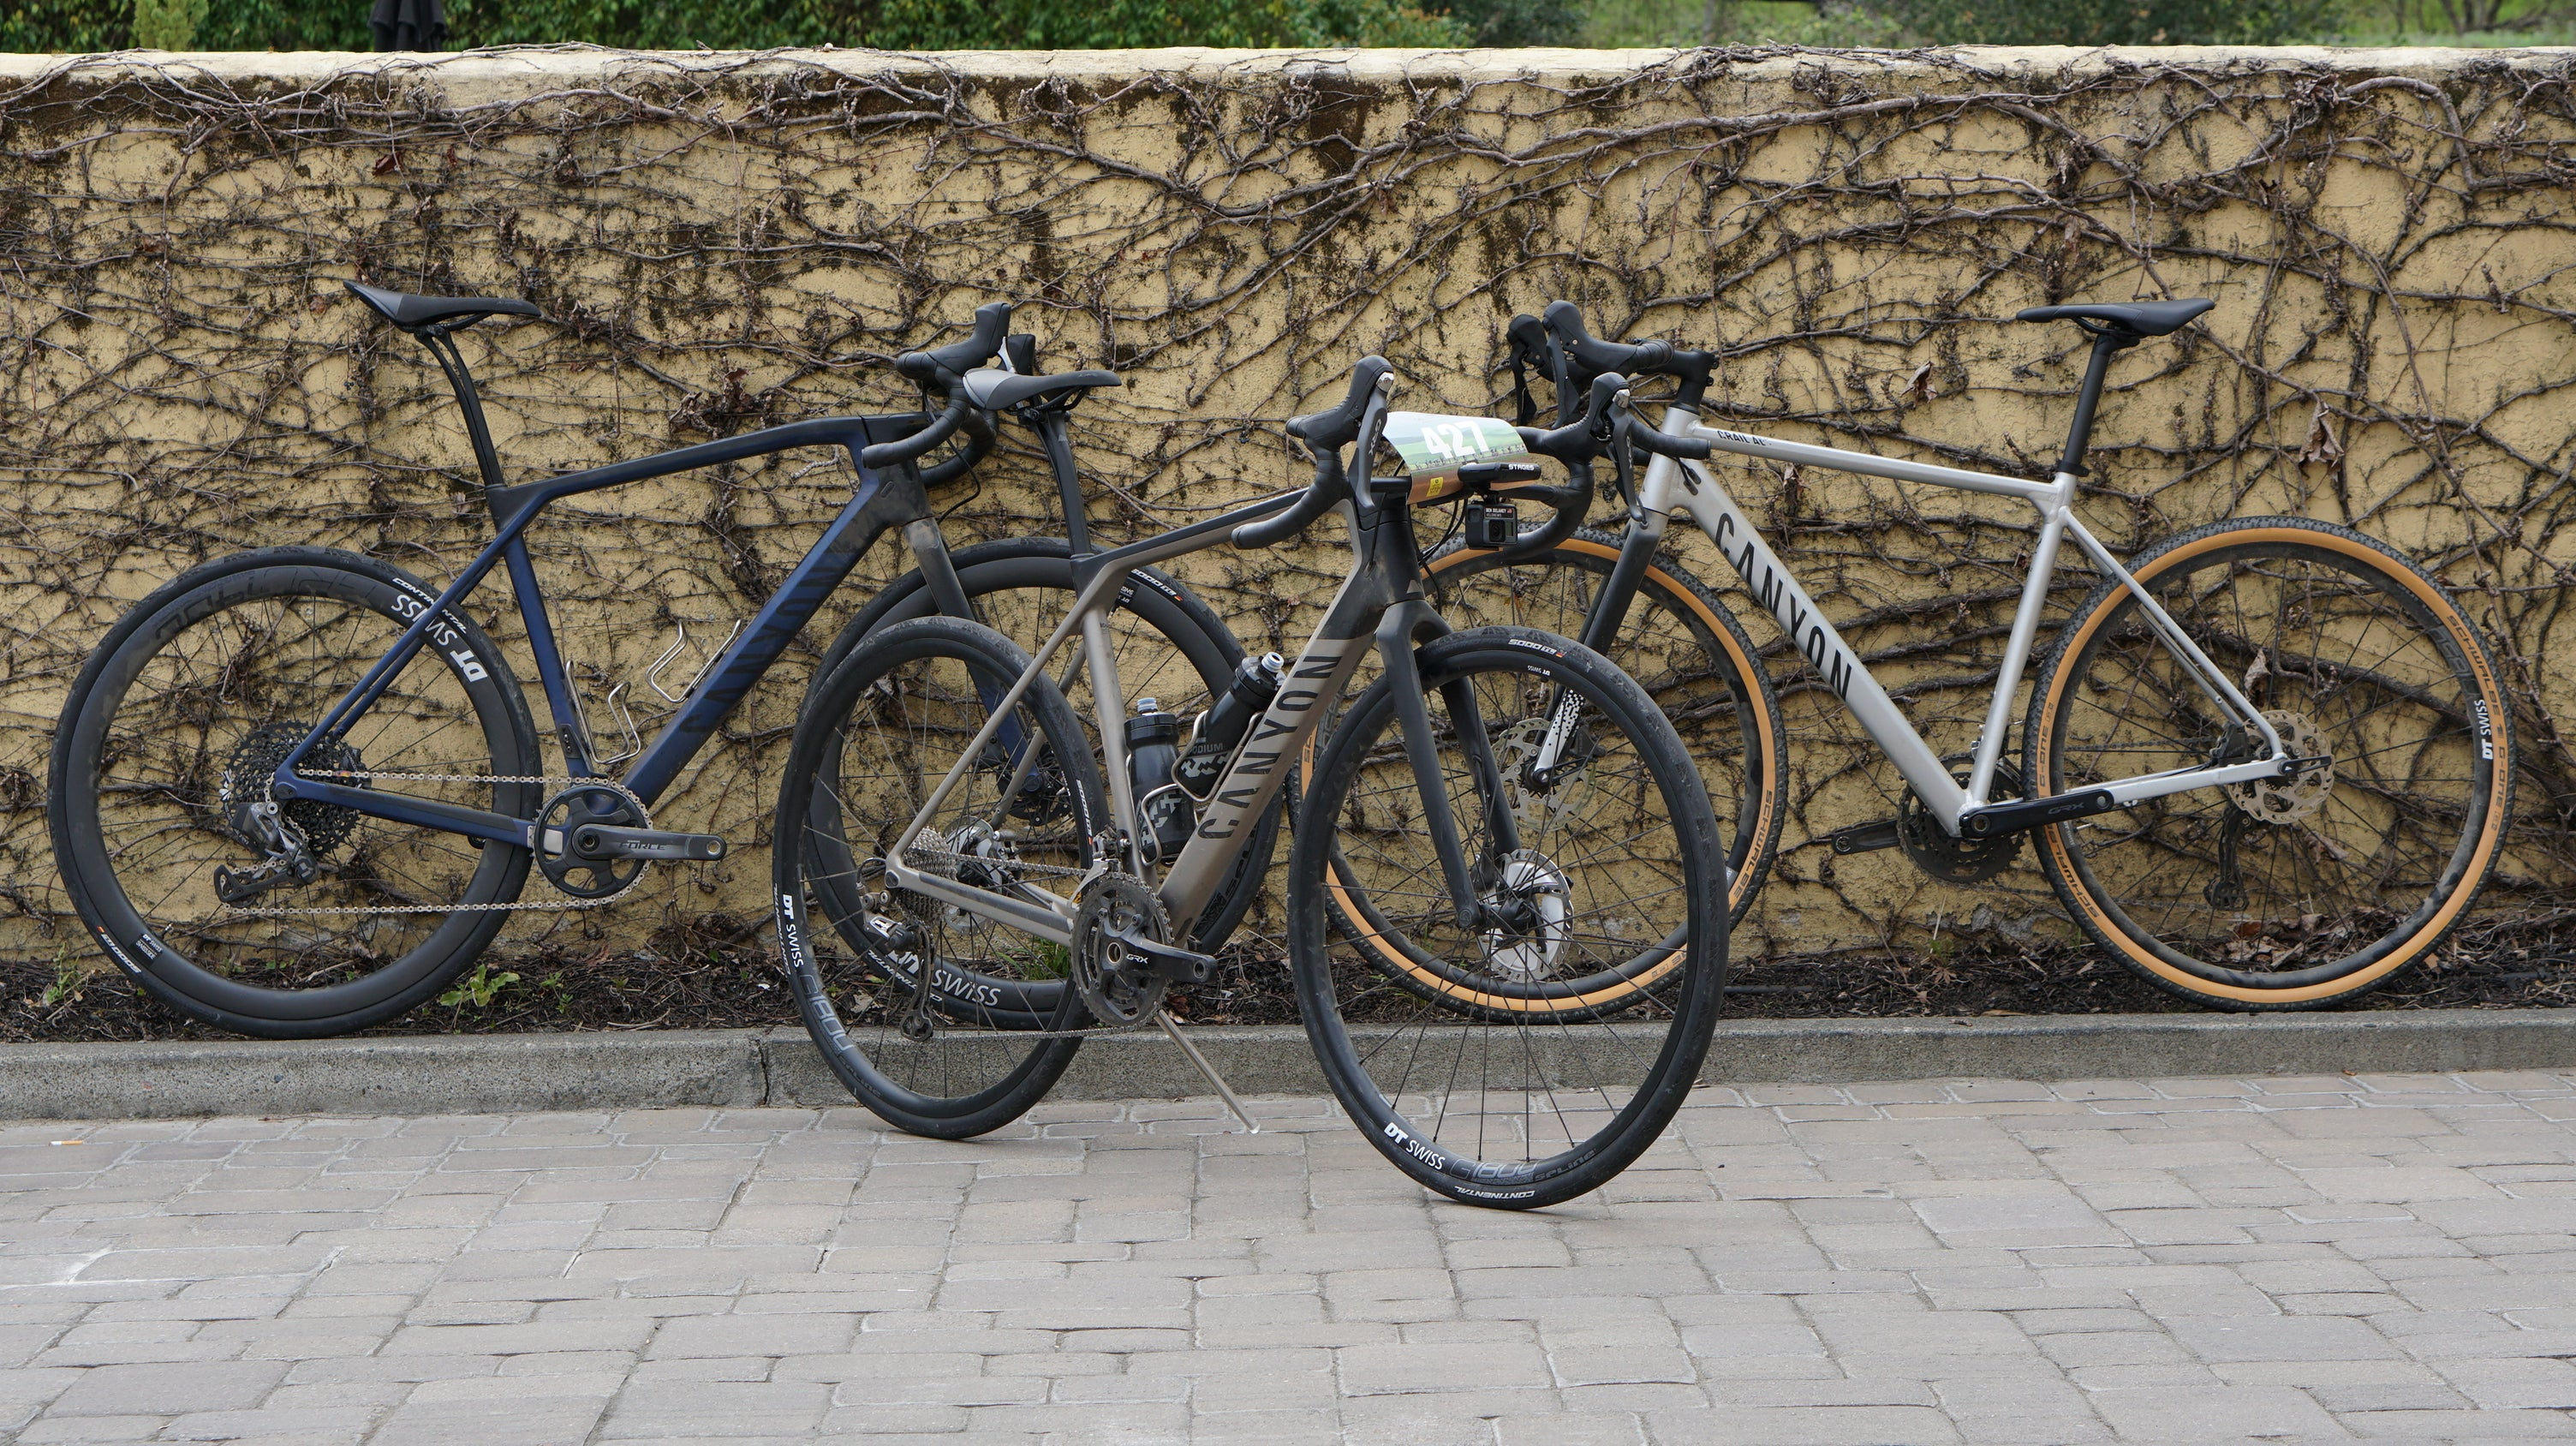 Reviews to come on the Canyon Grails. Photo: Ben Delaney | VeloNews